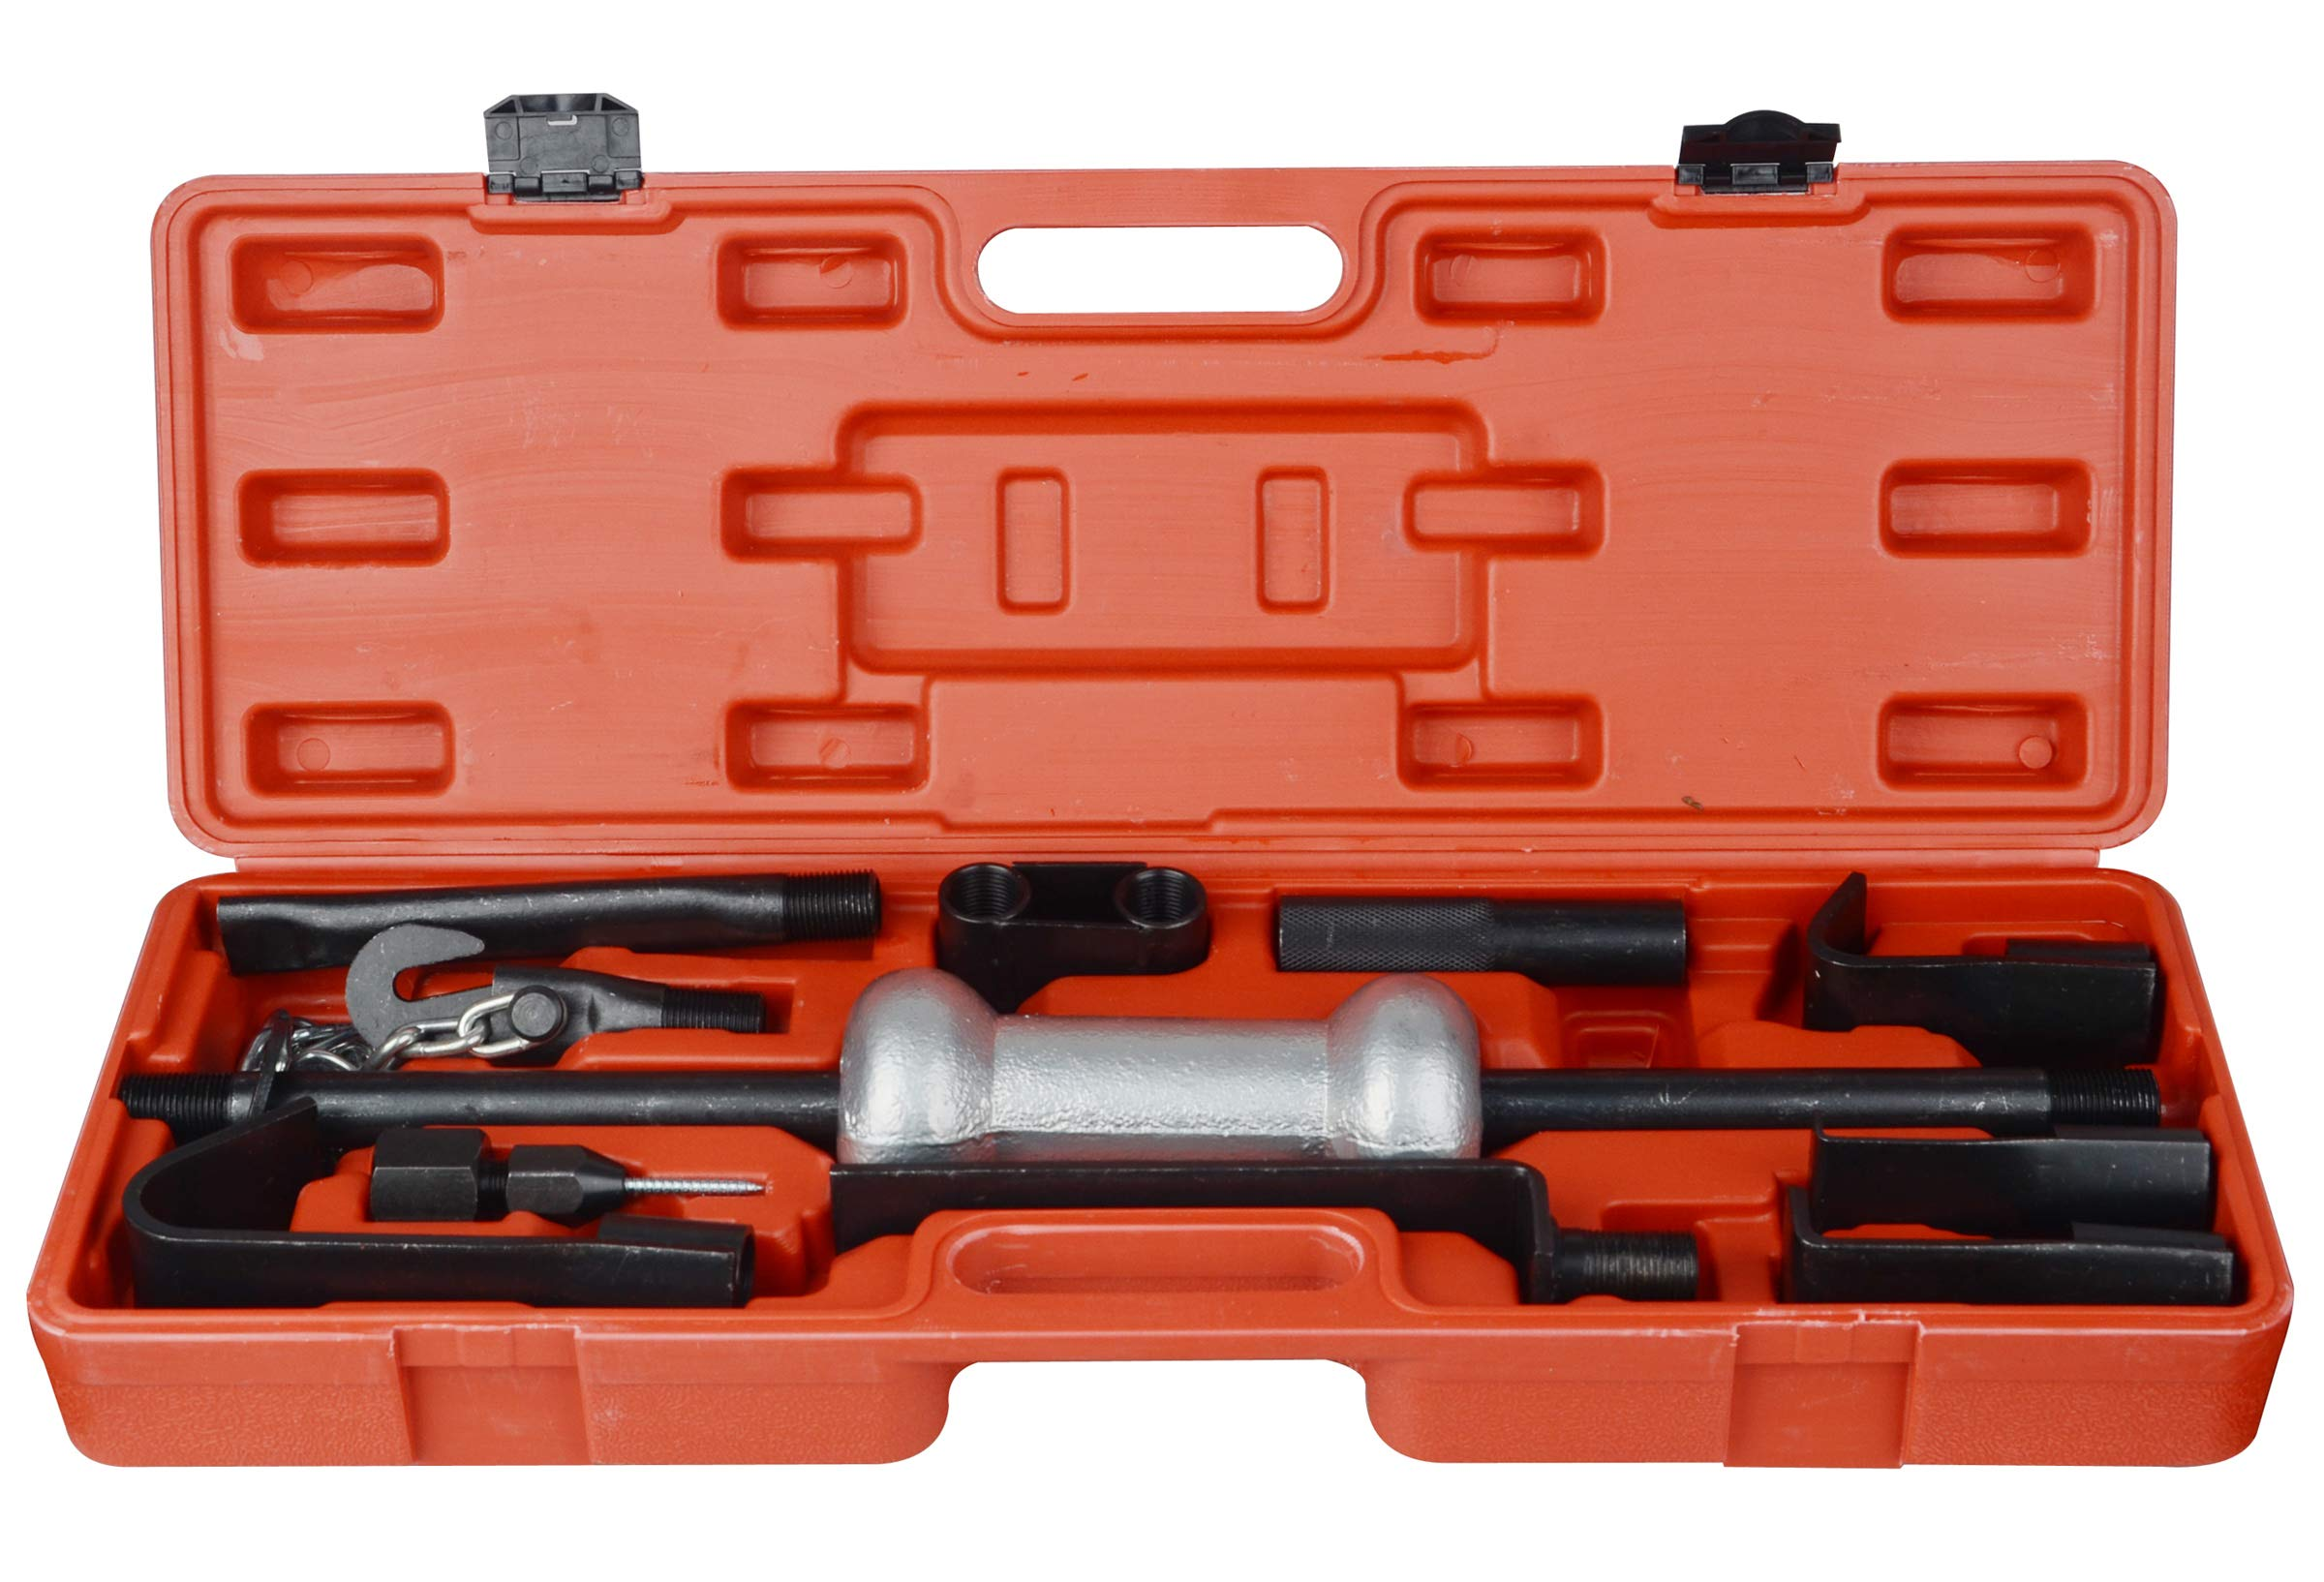 DA YUAN 13PC Dent Puller with Slide Hammer Auto Body Truck Repair Tool Kit Set